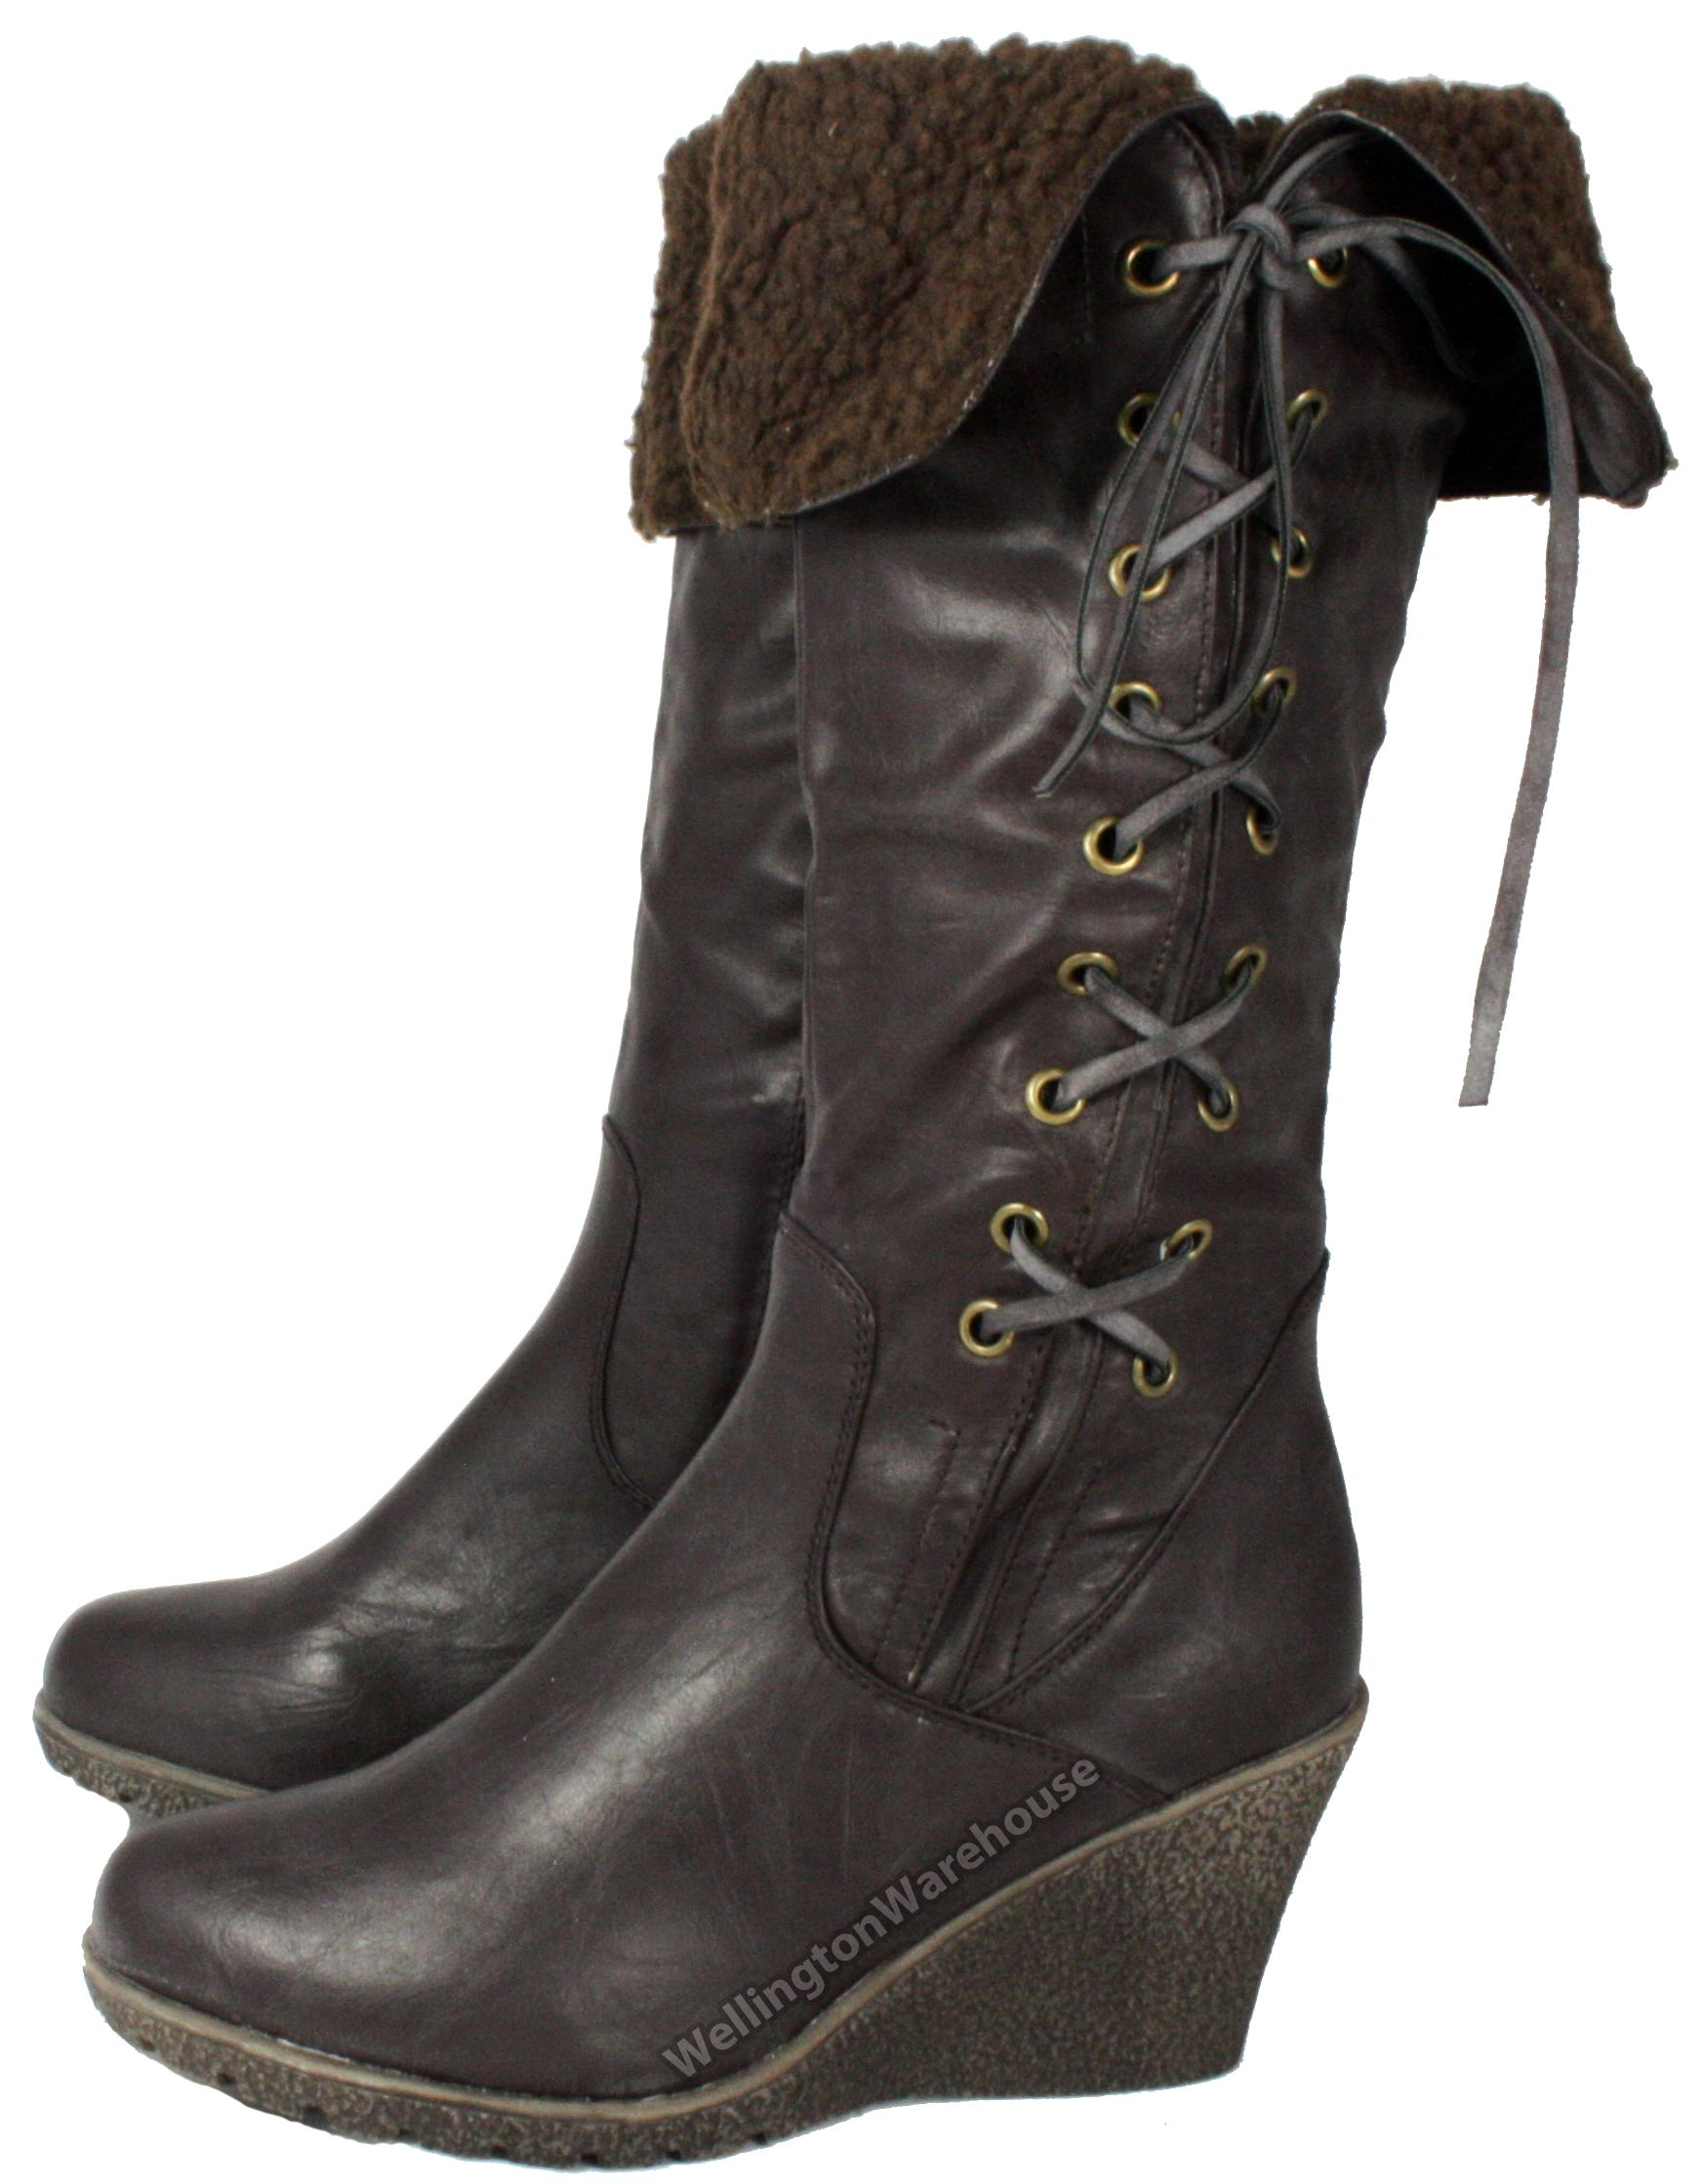 fbl610 manfield stylish s brown wedge heel boots